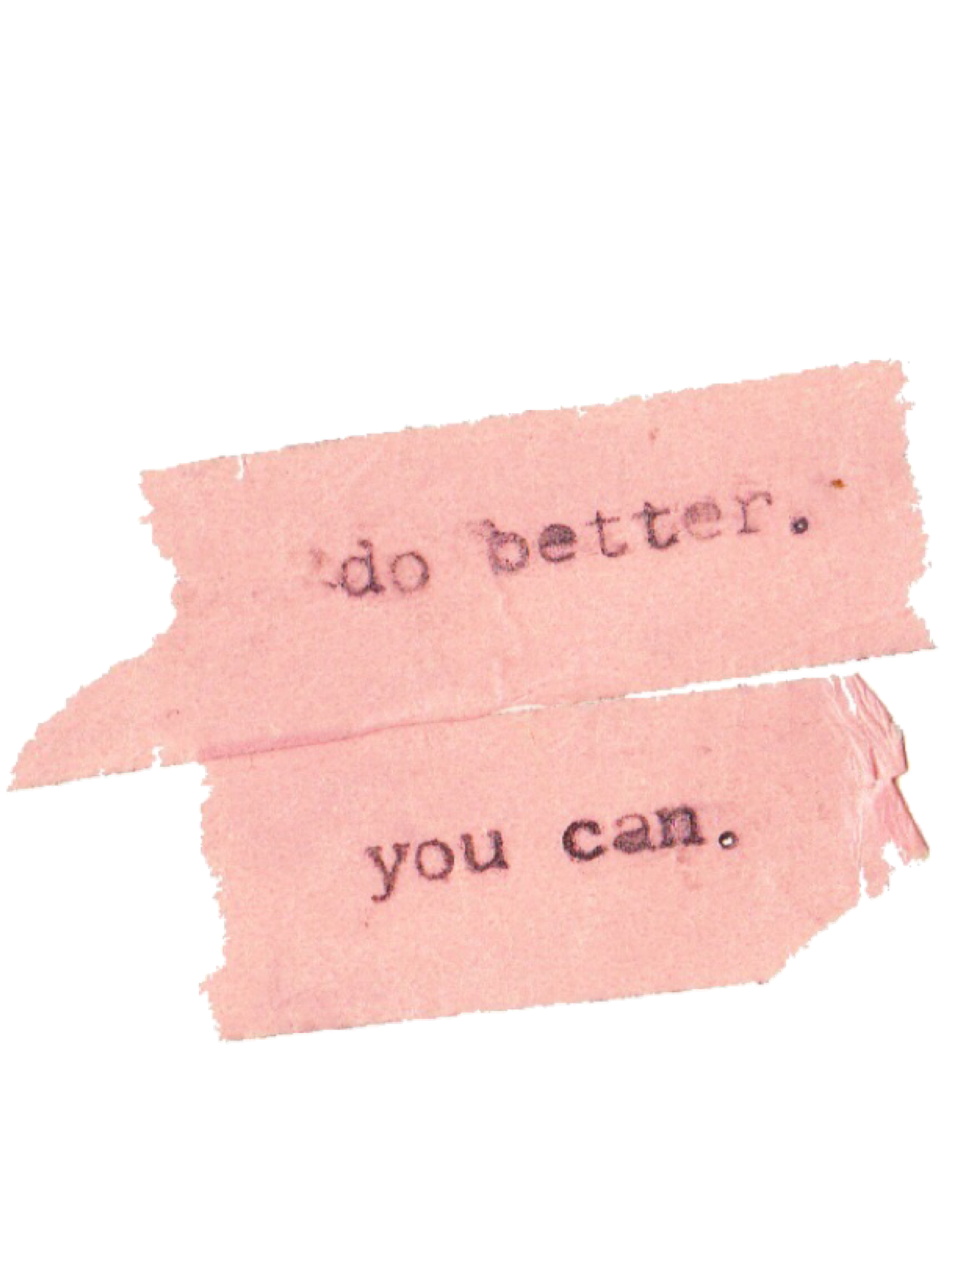 #overlay #edit #paint #words #text #cute #aesthetic #pink ...